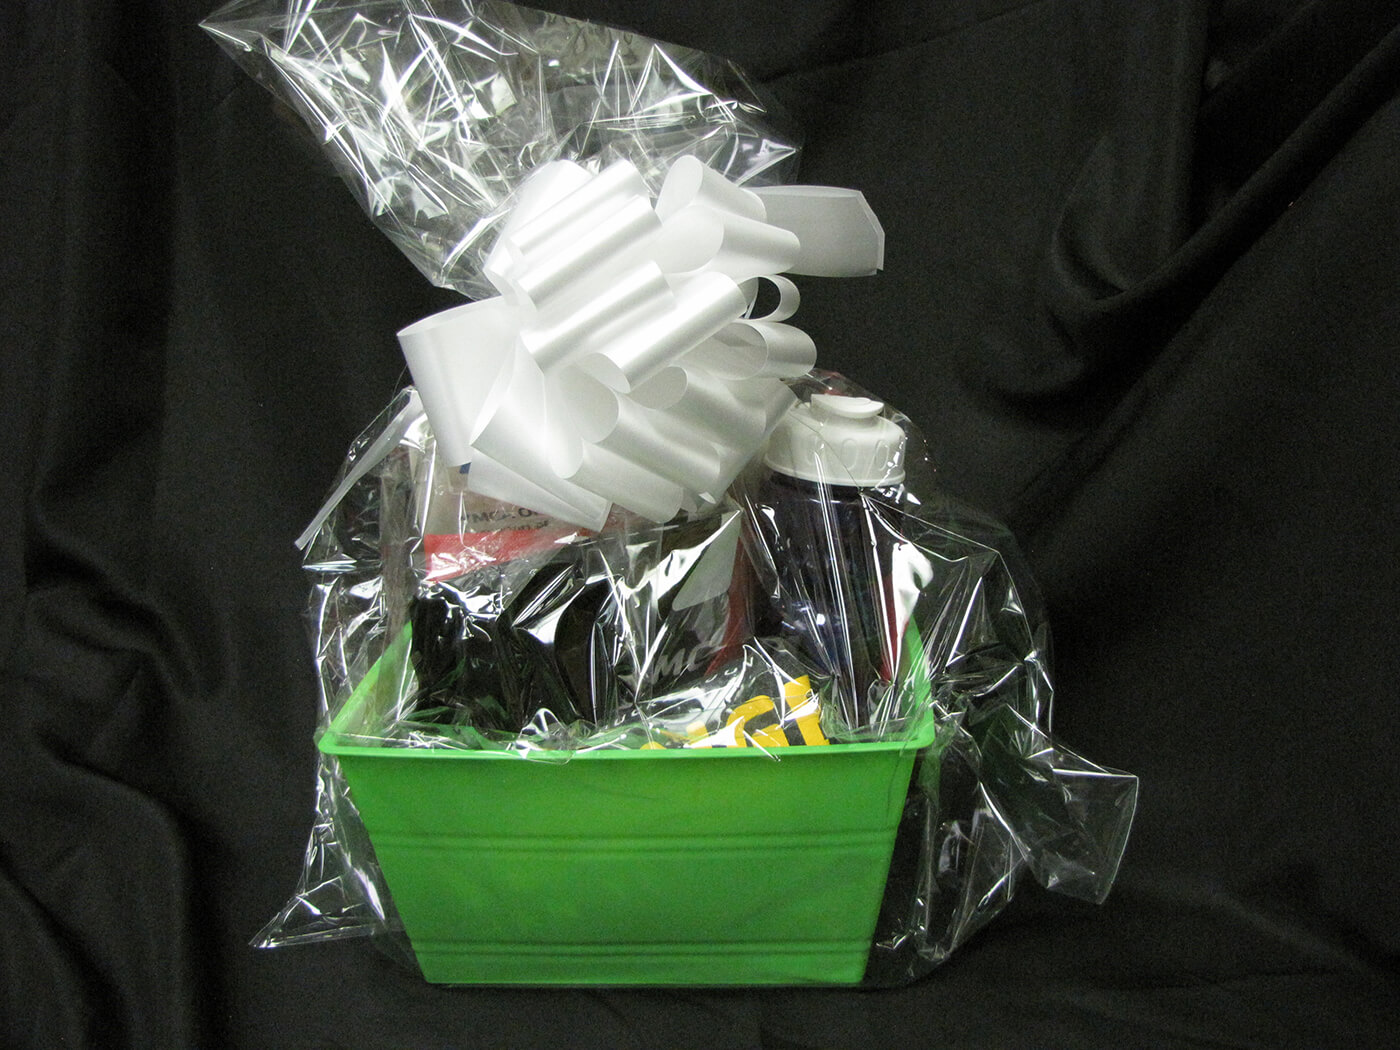 YMCA Membership (Green) Basket